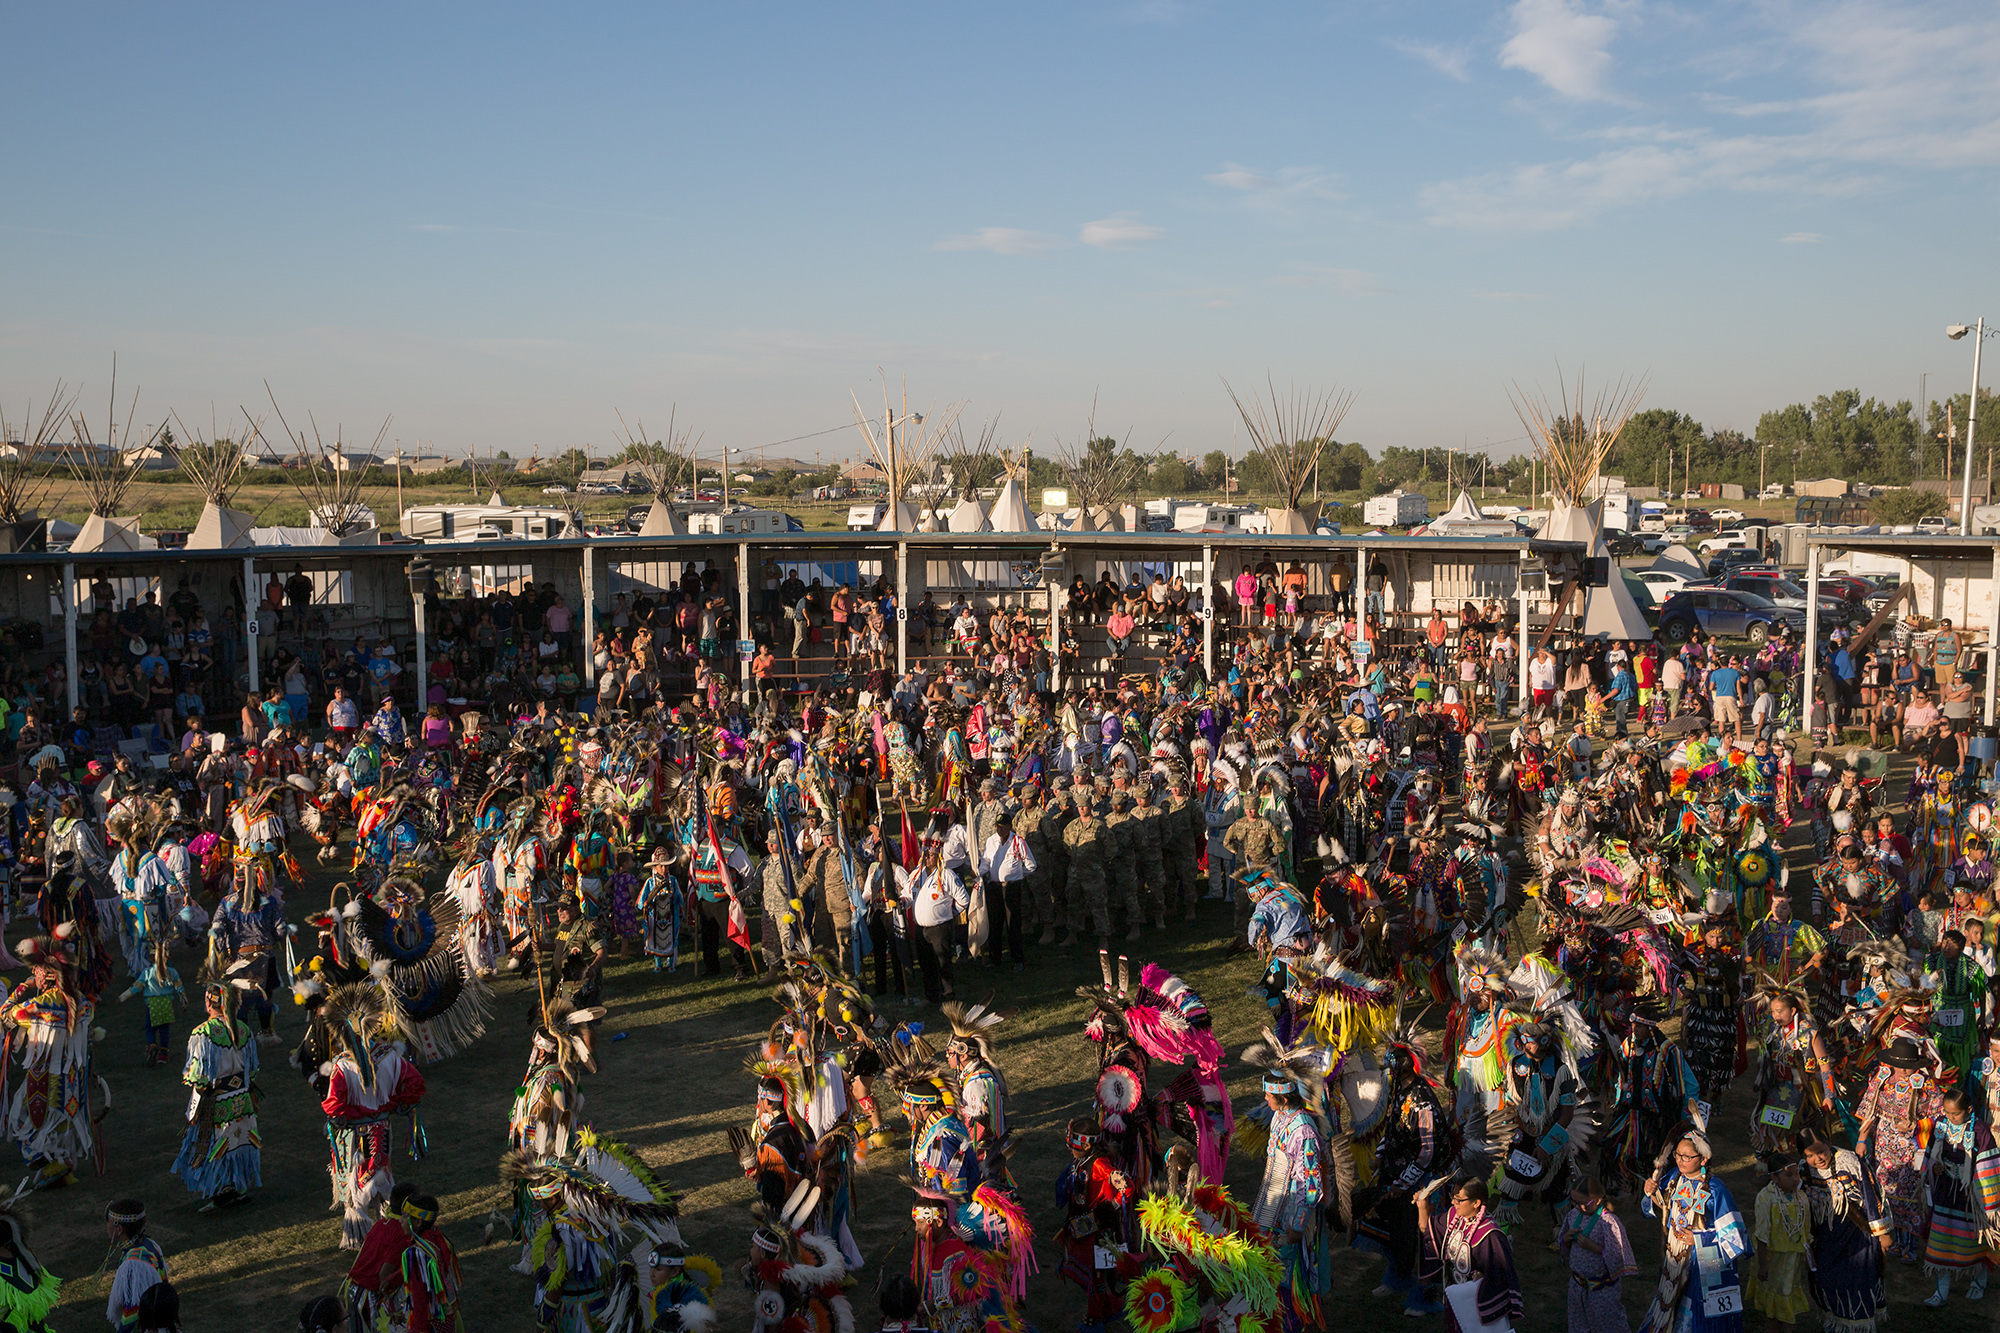 A humble arena comes to life with drums, chanting, and dancers during the Grand Entry at North American Indian Days in Browning, Montana.